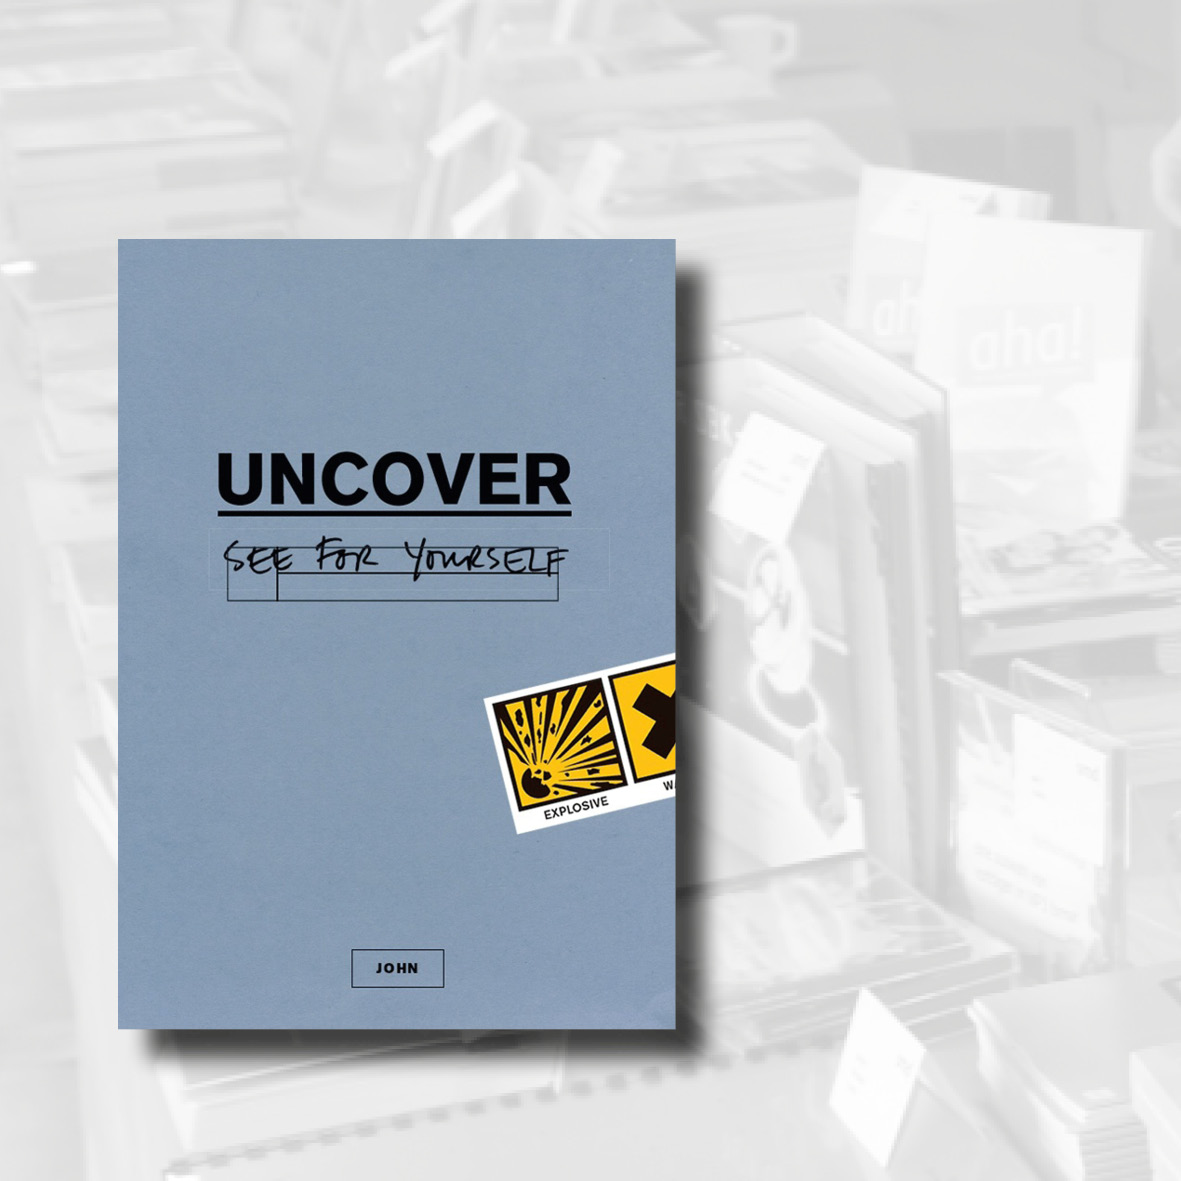 box_uncover3.jpg